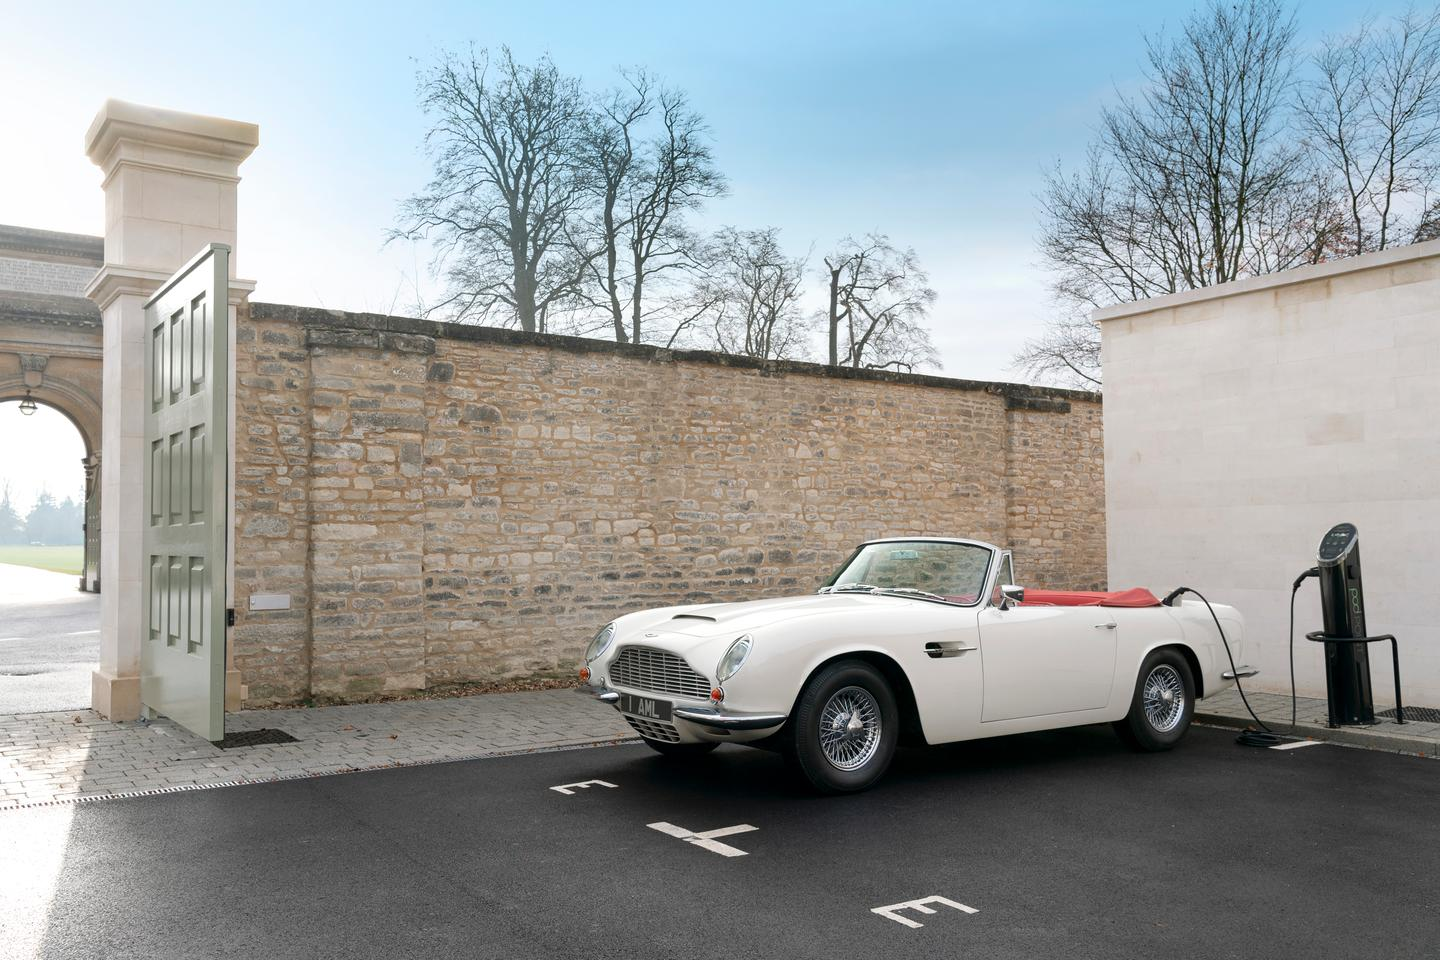 The first car to use the system is a 1970 Aston Martin DB6 MkII Volante – photos of the actual hardware have yet to be provided